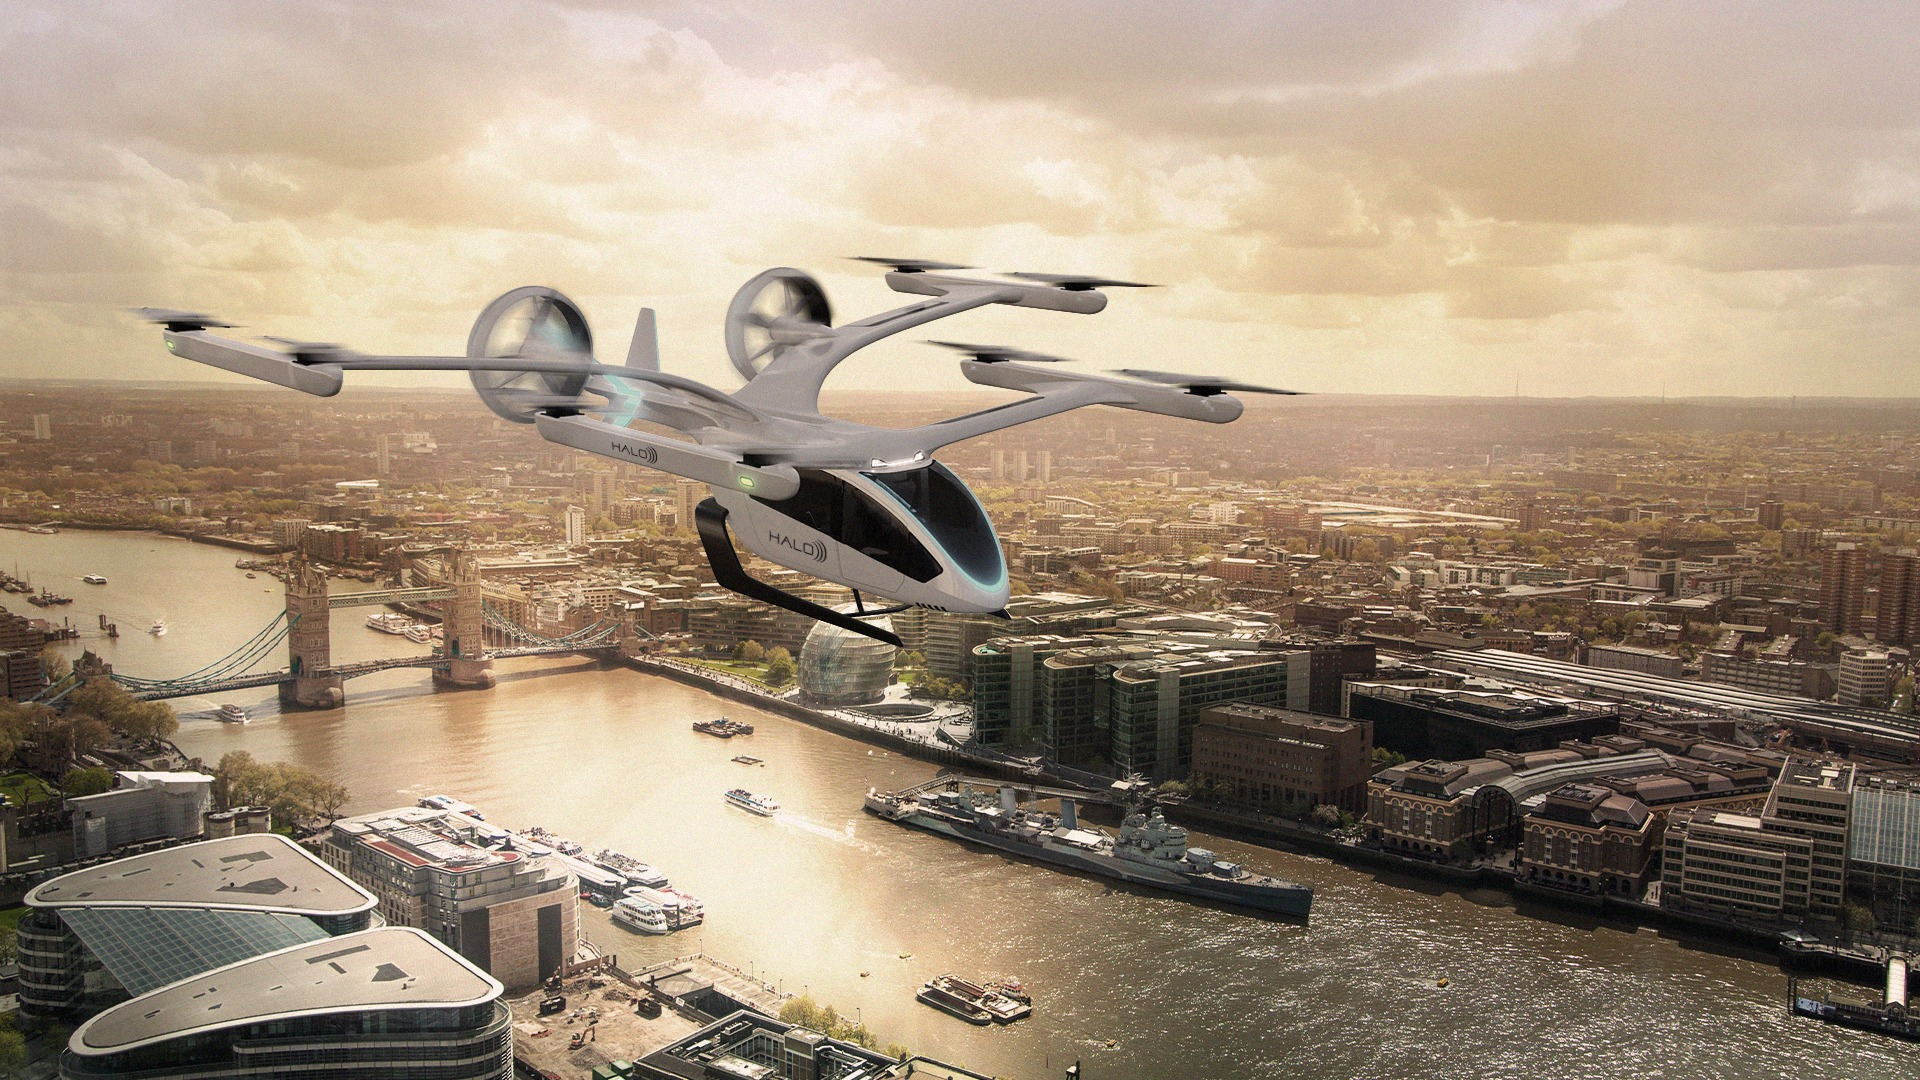 Halo has announced an order for 200 Eve eVTOLS, to be phased into air mobility operations in the UK and US from 2026